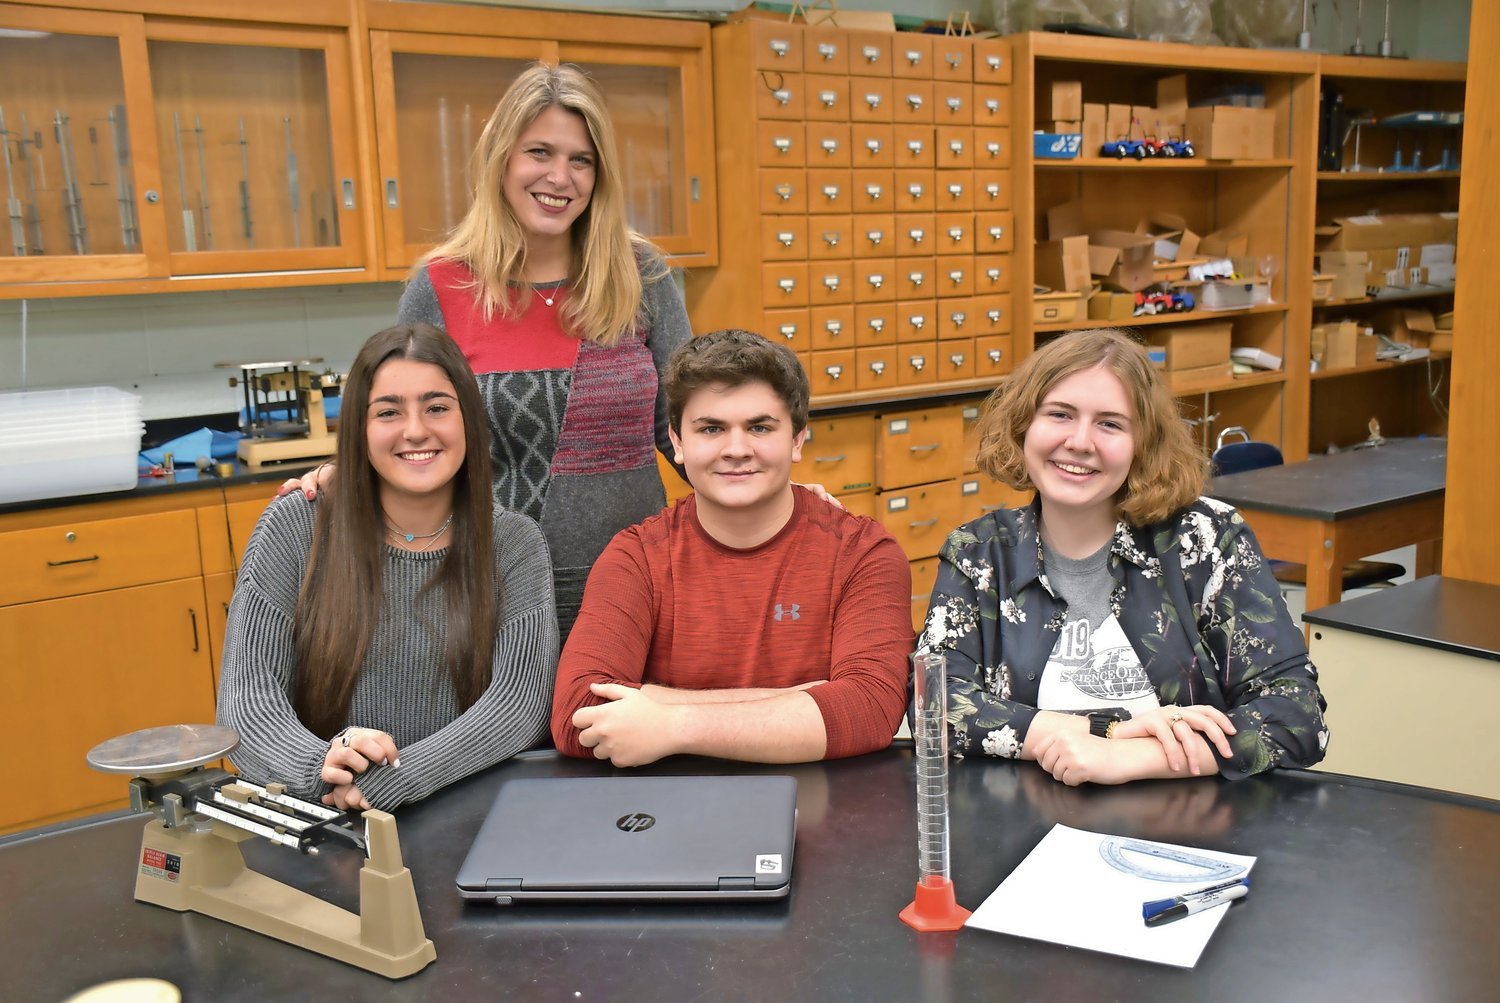 John F. Kennedy Advanced Science Research teacher Barbi Frank, standing, helped seniors Kenar Gelman, left, Andrew Brinton and Katherine St. George on their projects for the Regeneron Science Talent Search competition.